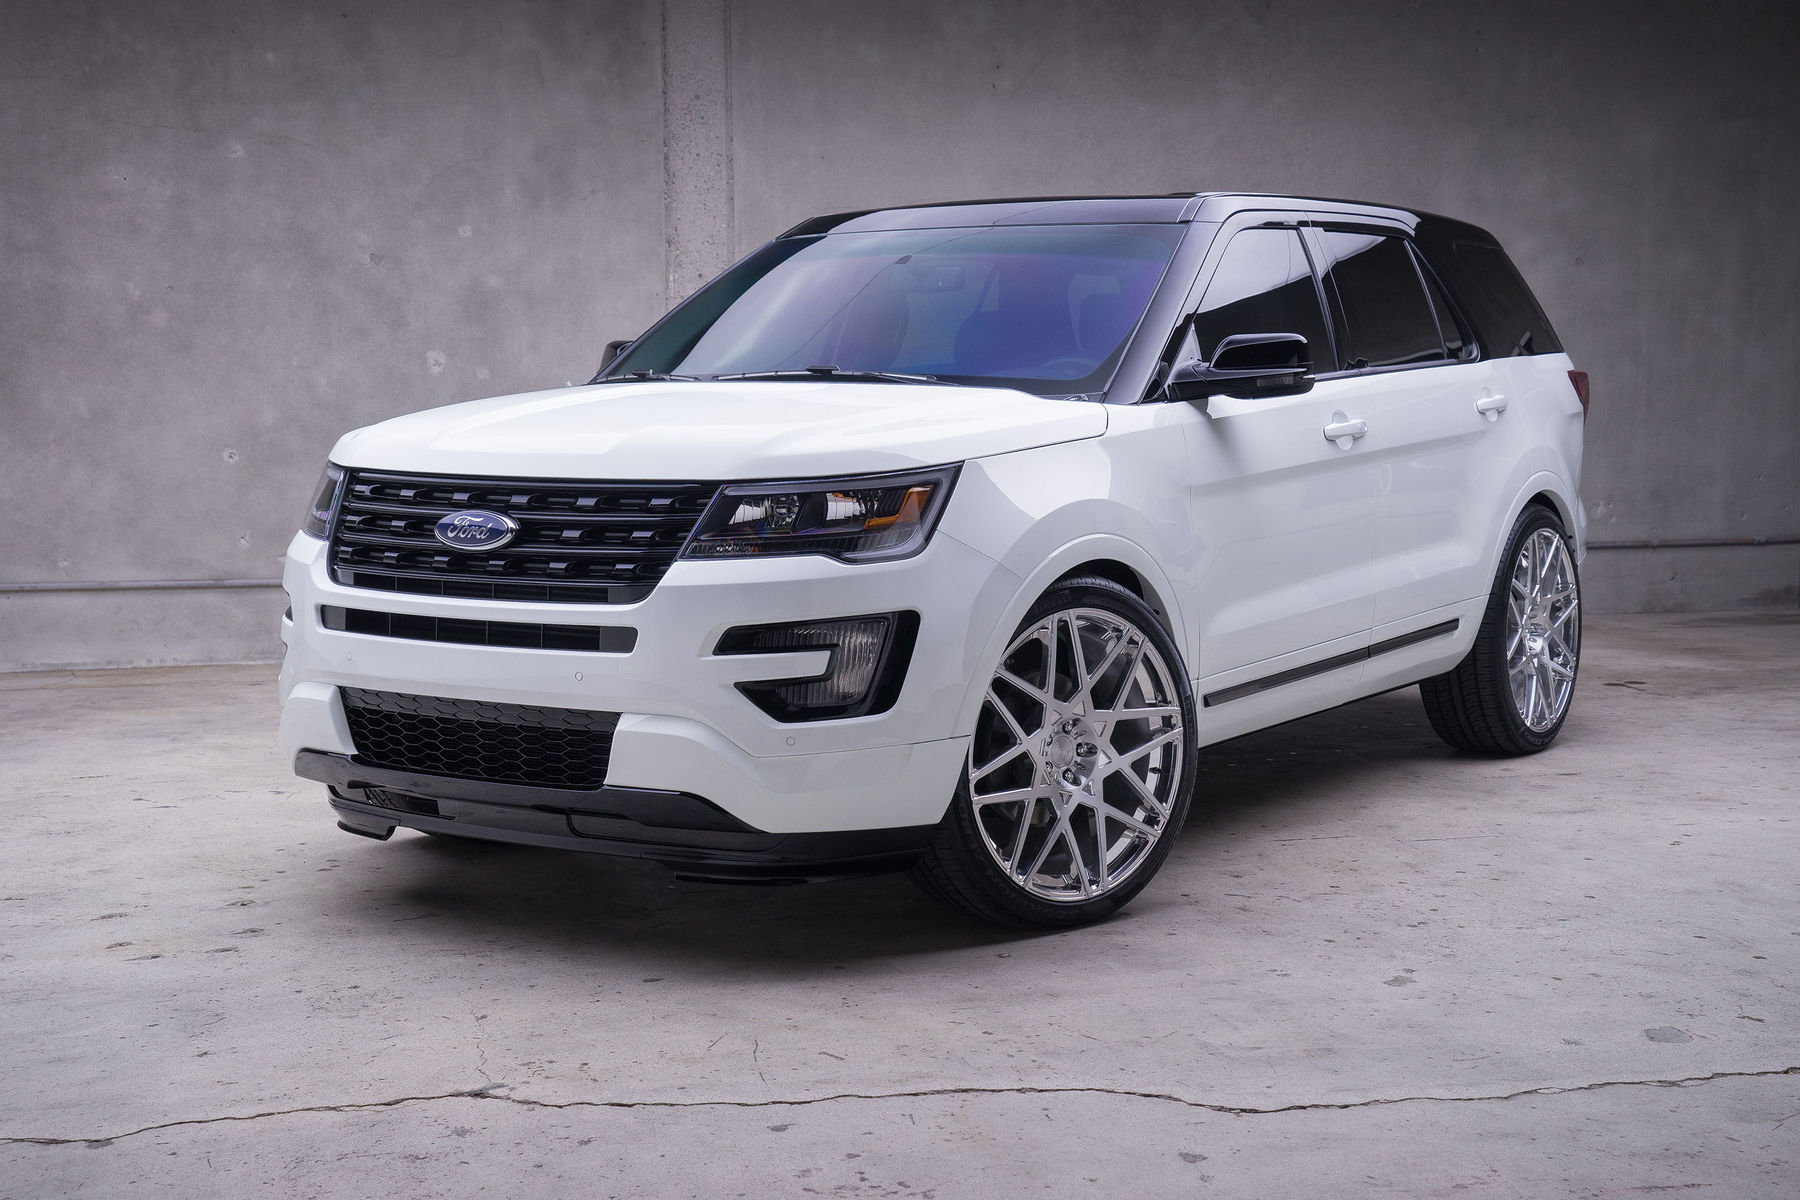 2015 Ford Explorer Sport | '15 Ford Explorer Sport by MAD Industries